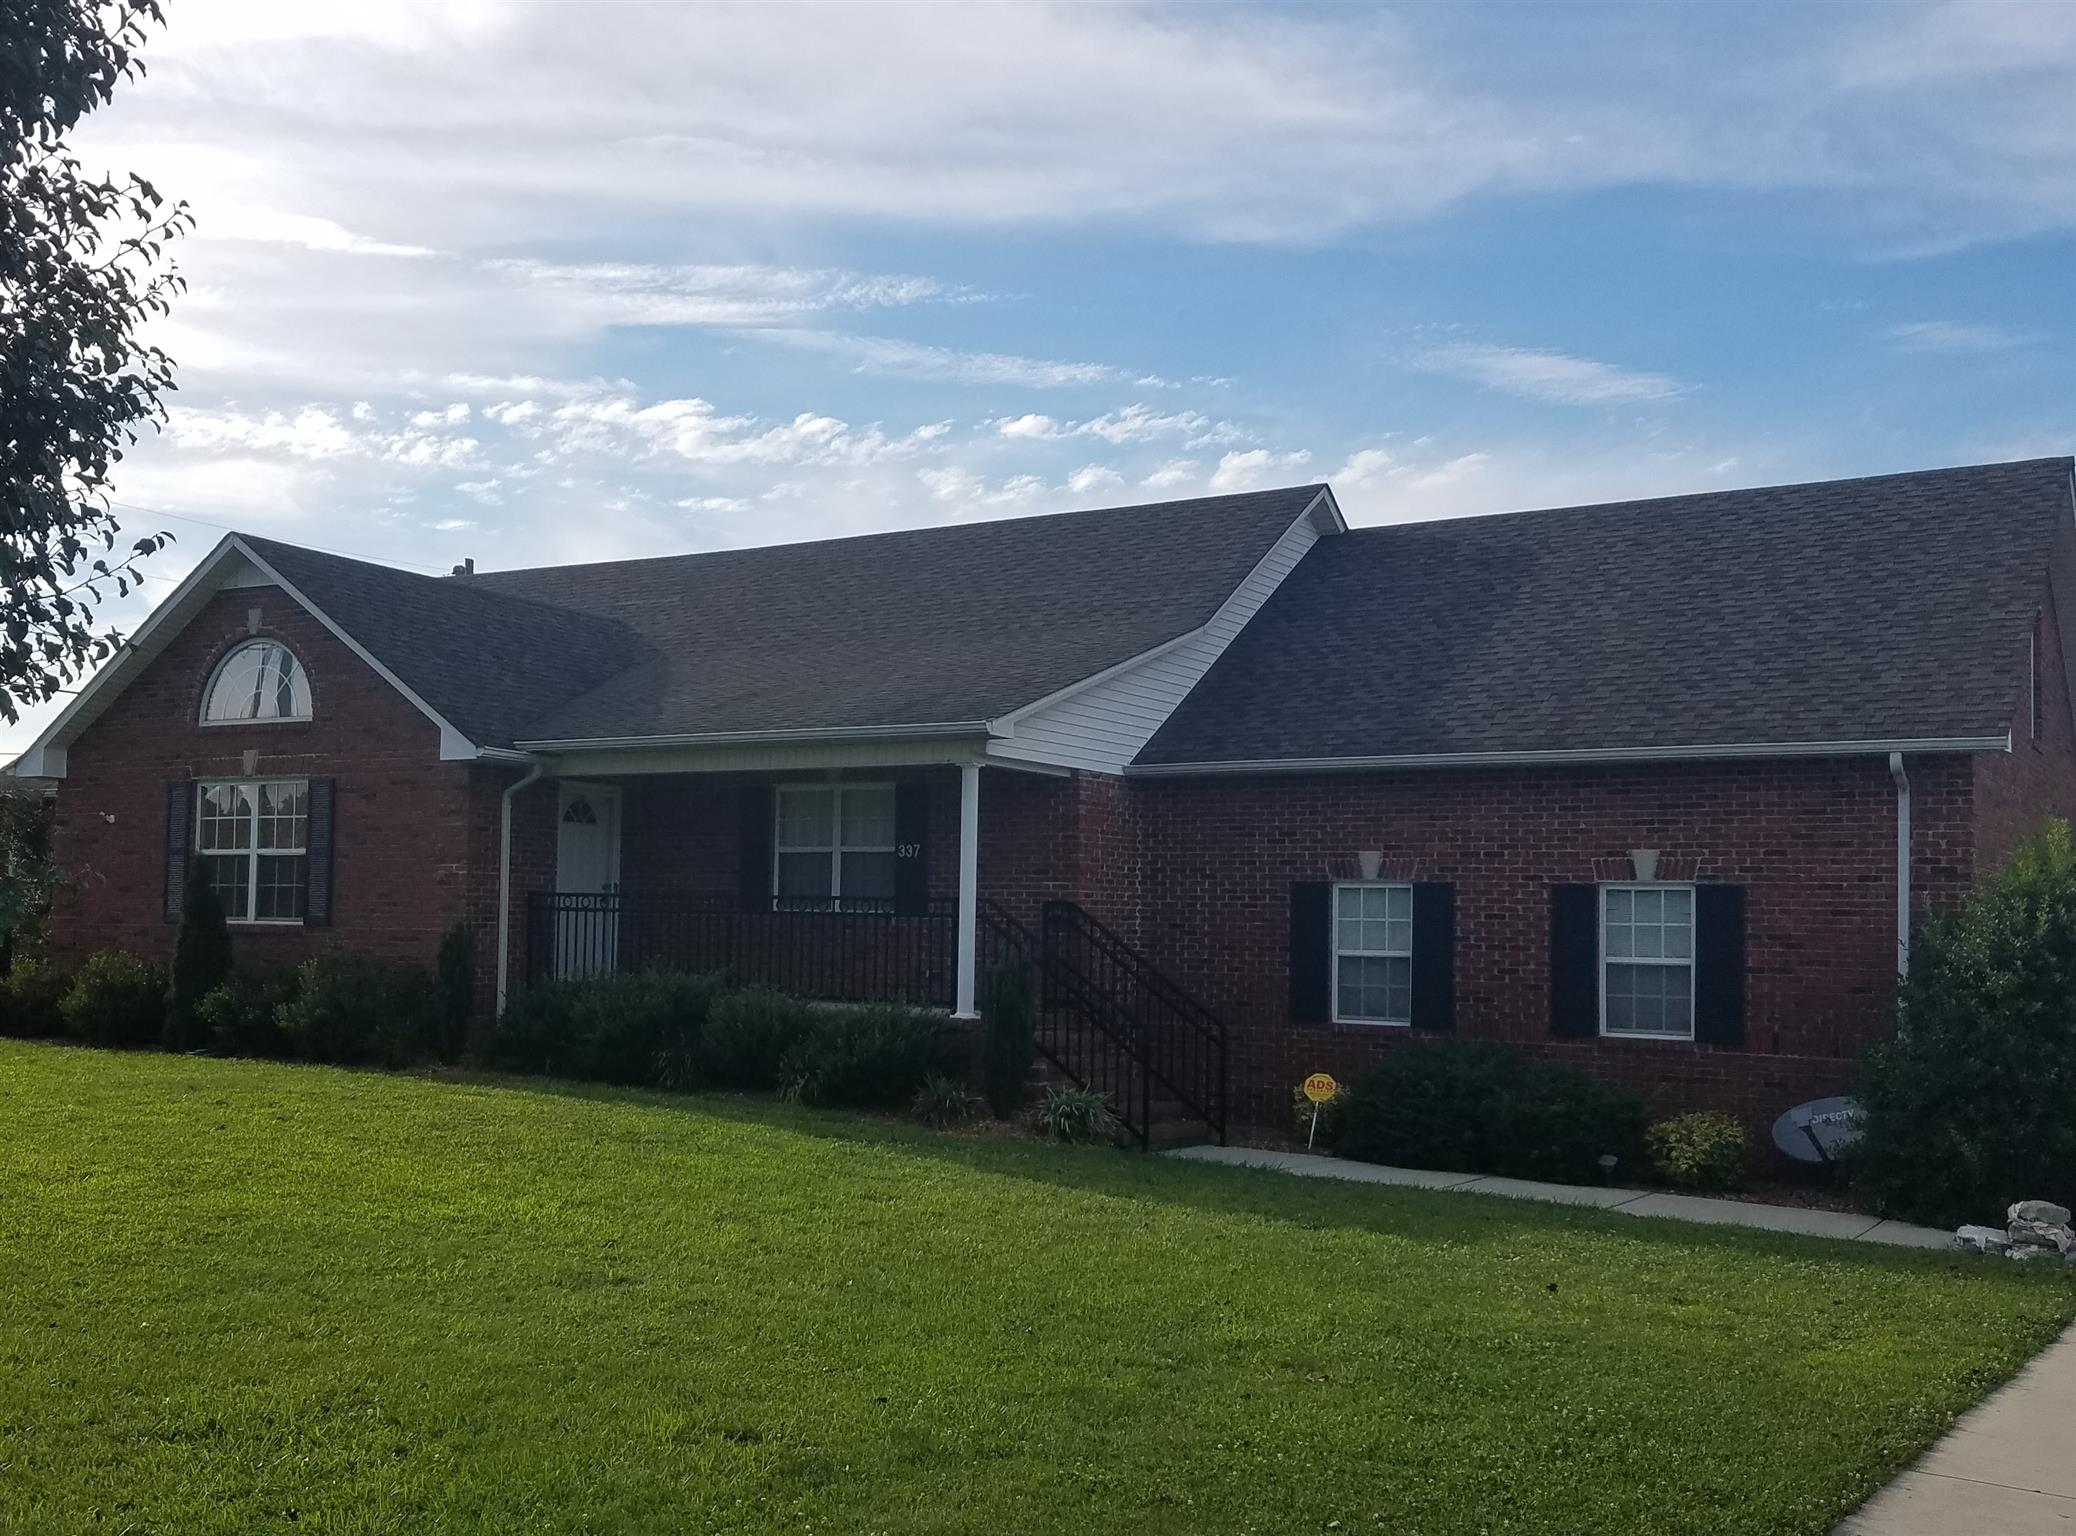 337 Brandon Rd, Manchester, TN 37355 - Manchester, TN real estate listing